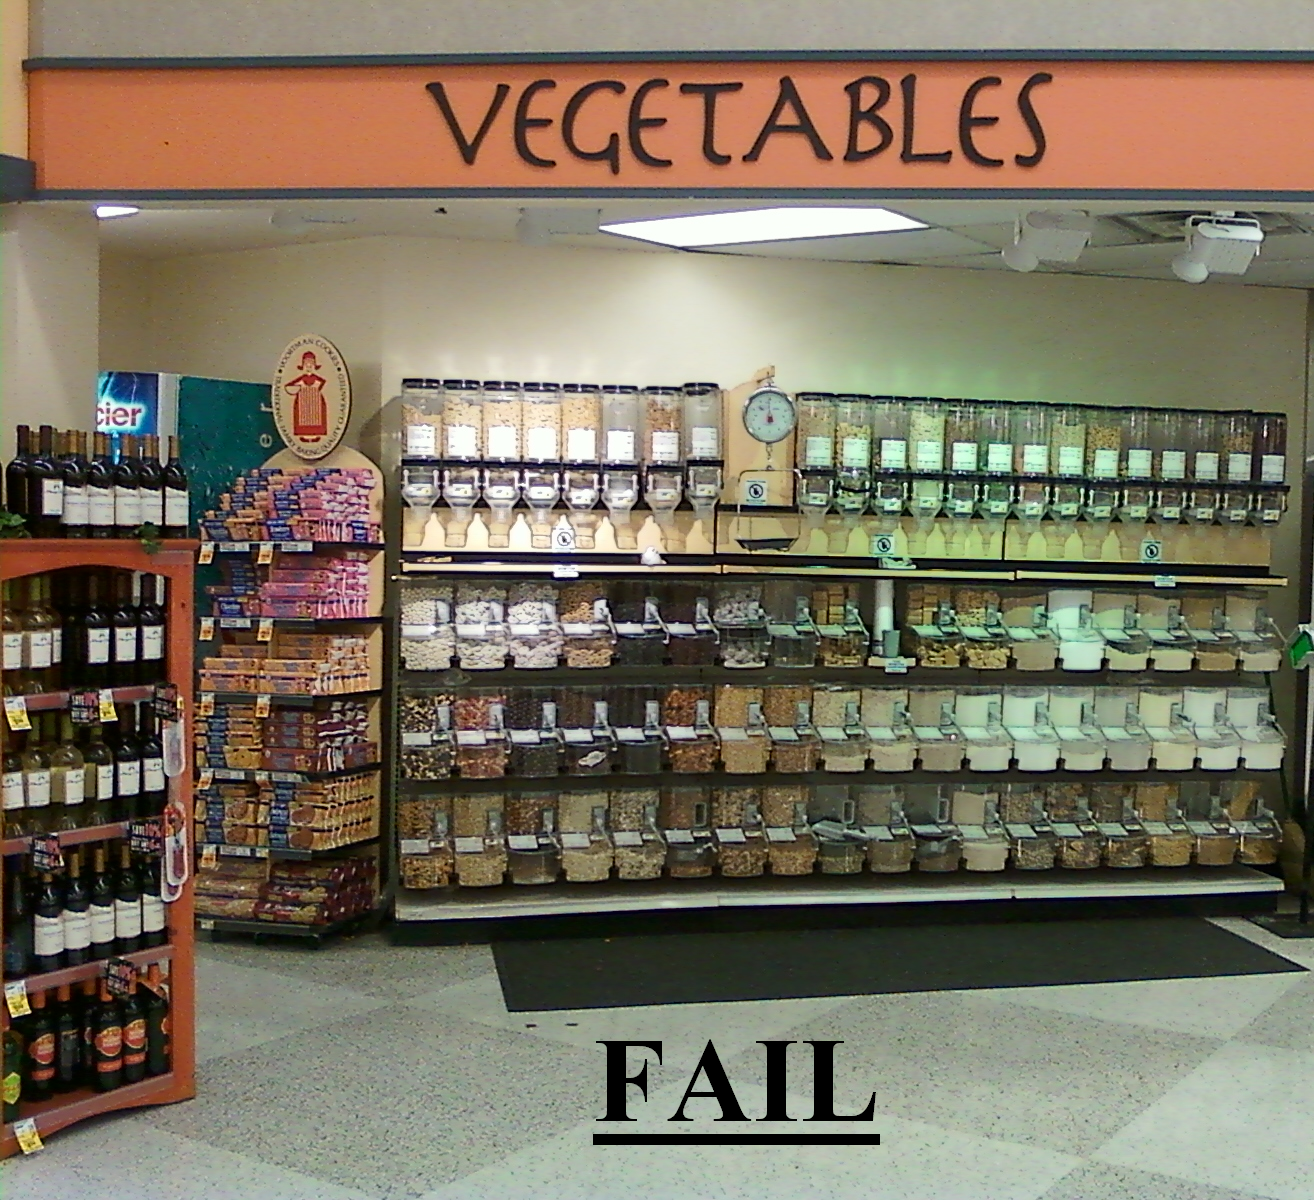 17 Diet Fails That Prove Your New Year S Resolution Is